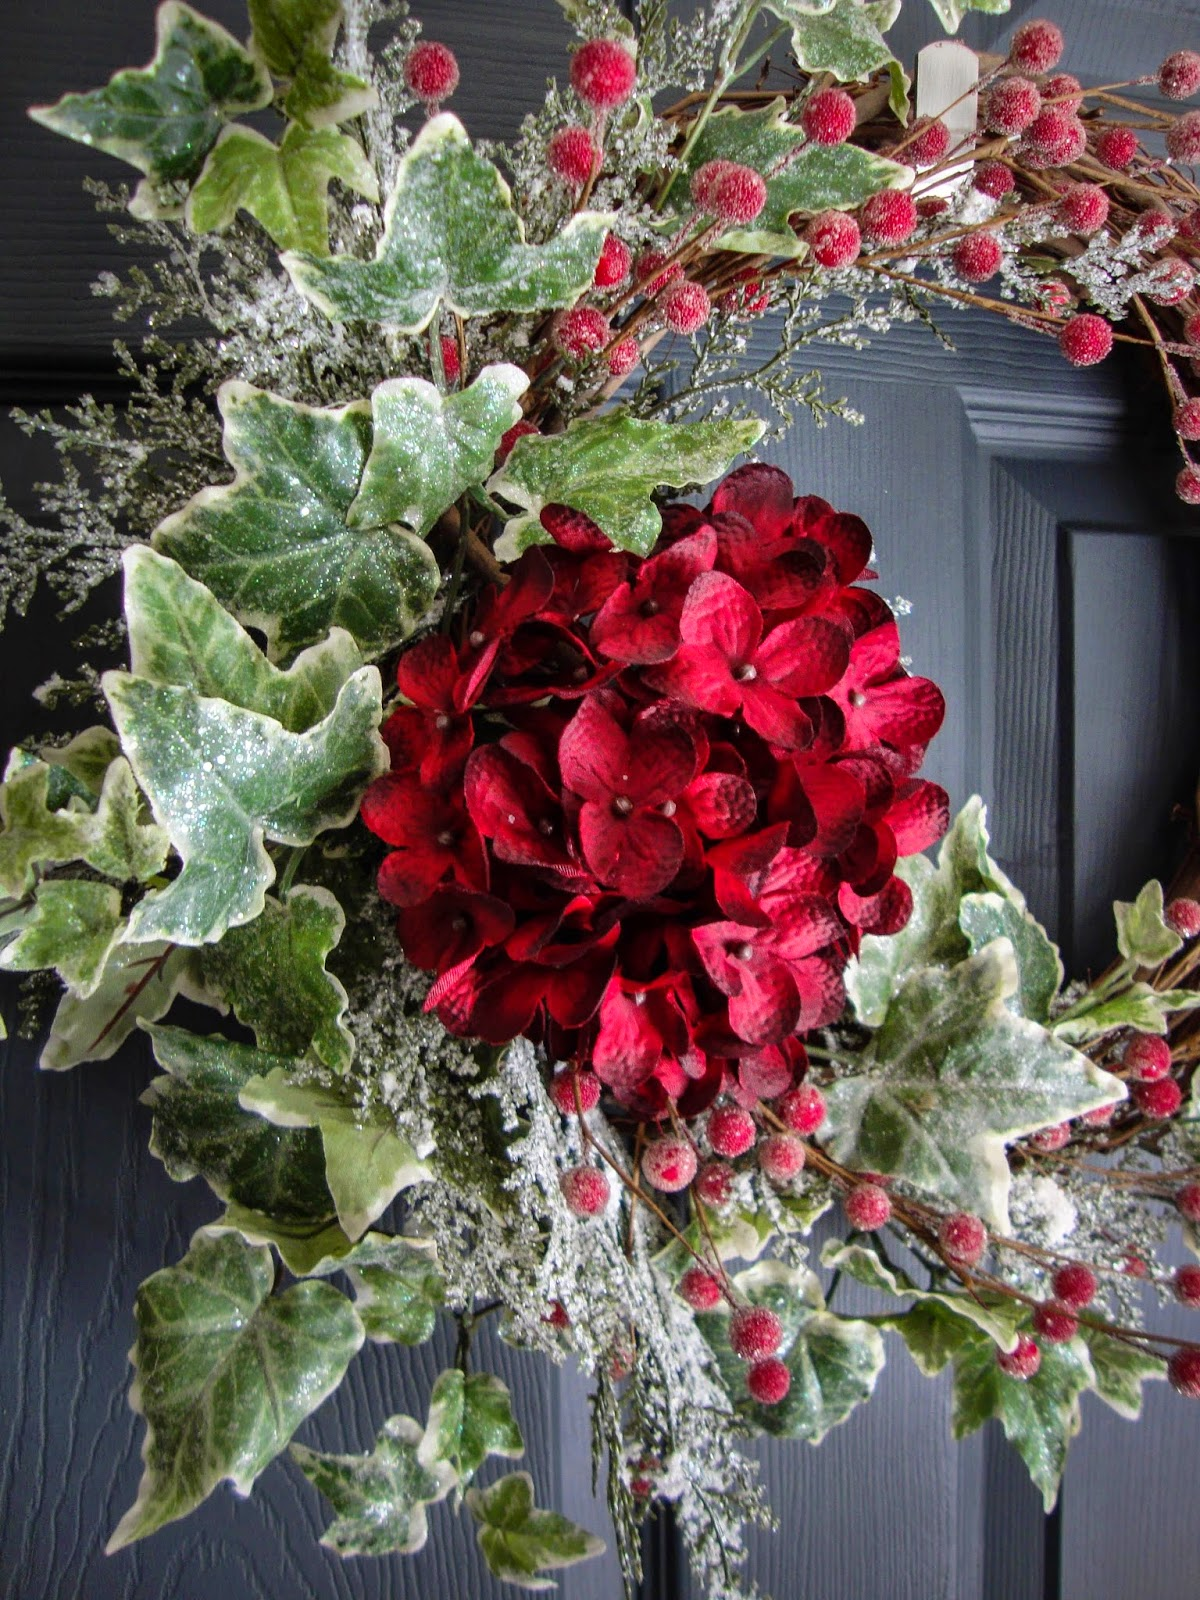 Wreaths By Homehearthgarden Etsy Com A Beautiful